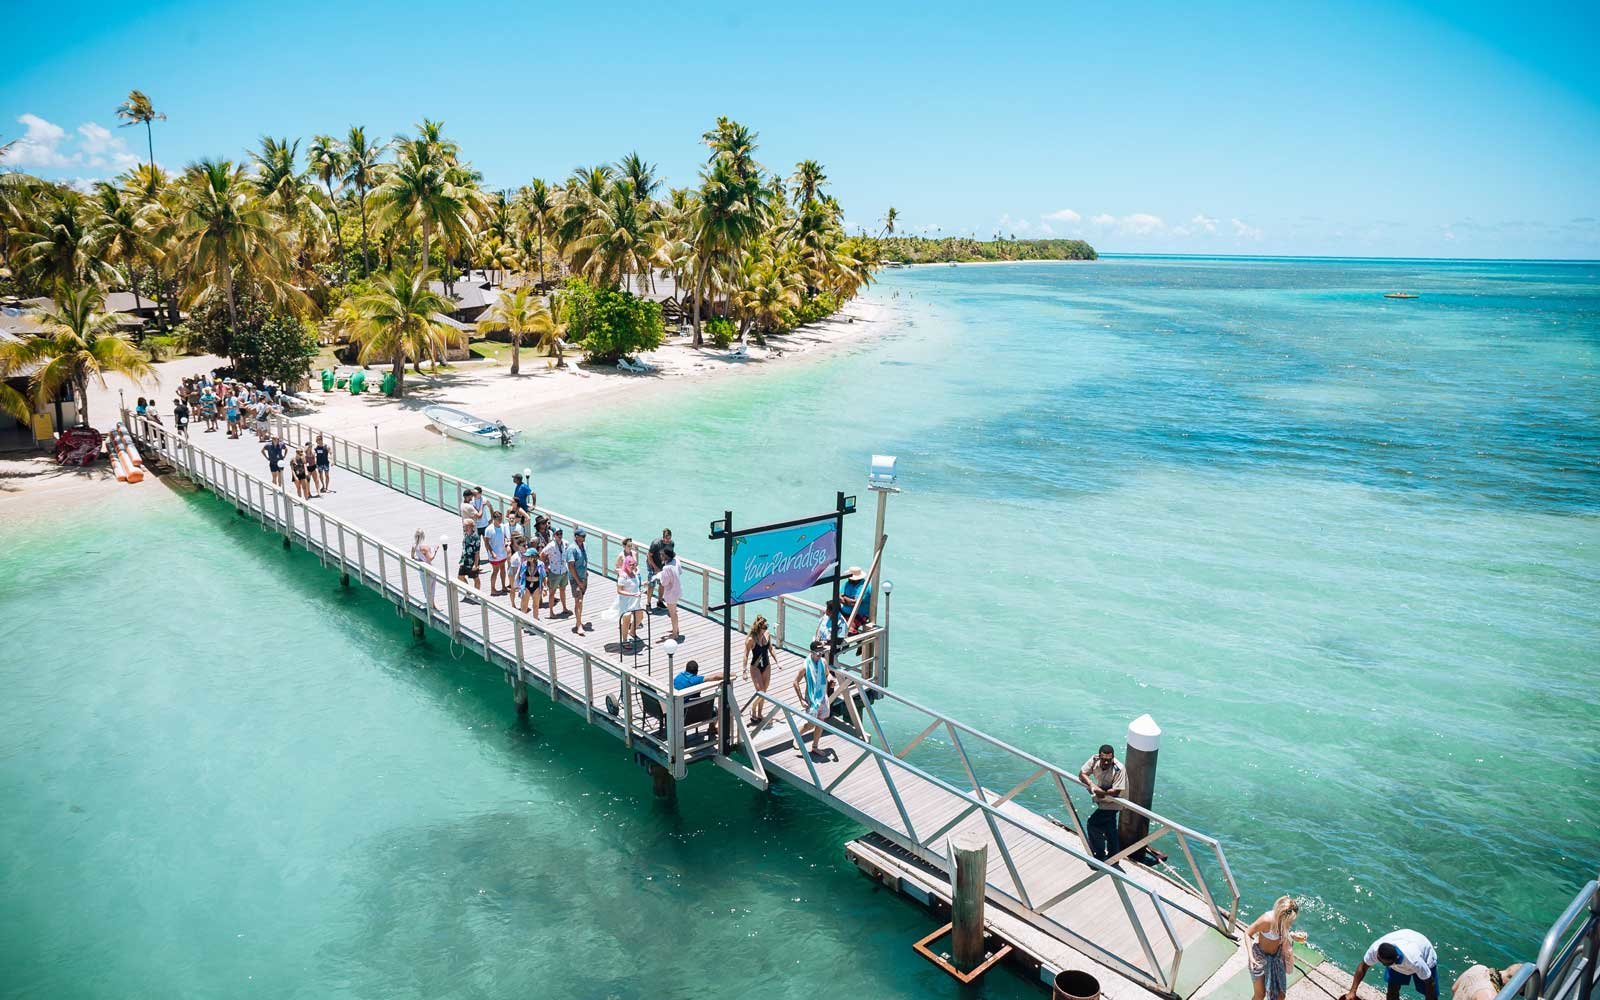 Travel Steals Deals: Save on Caribbean Vacations